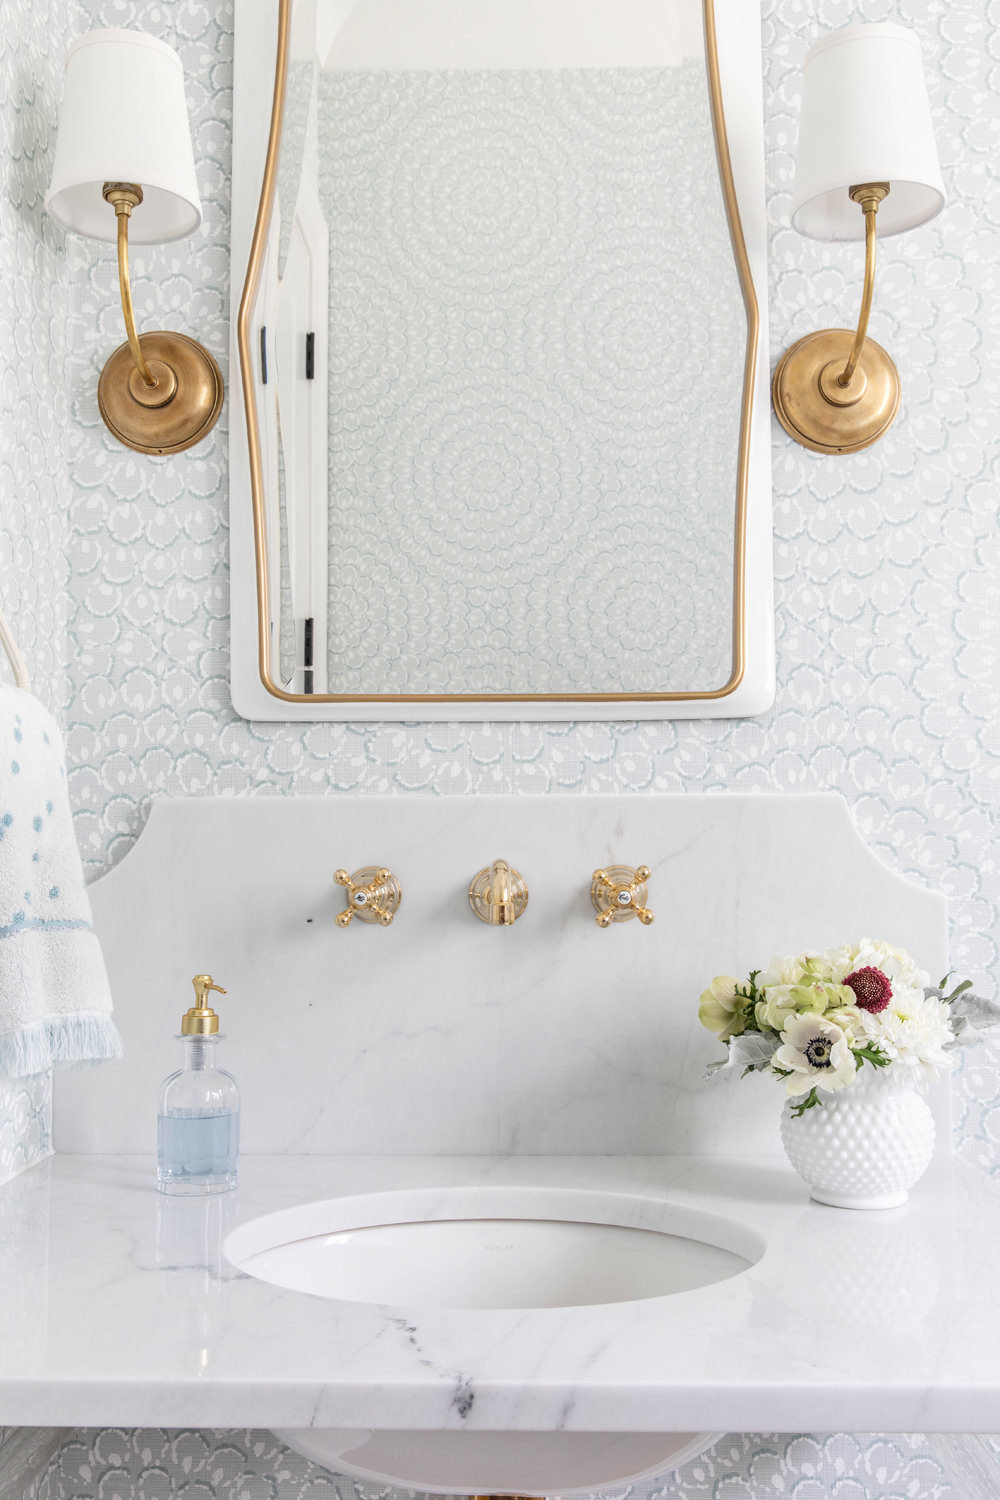 Thibaut-Wallpaper-with-Marble-Decorative-Backsplash-and-Acrylic-Brass-Sink-Legs-1